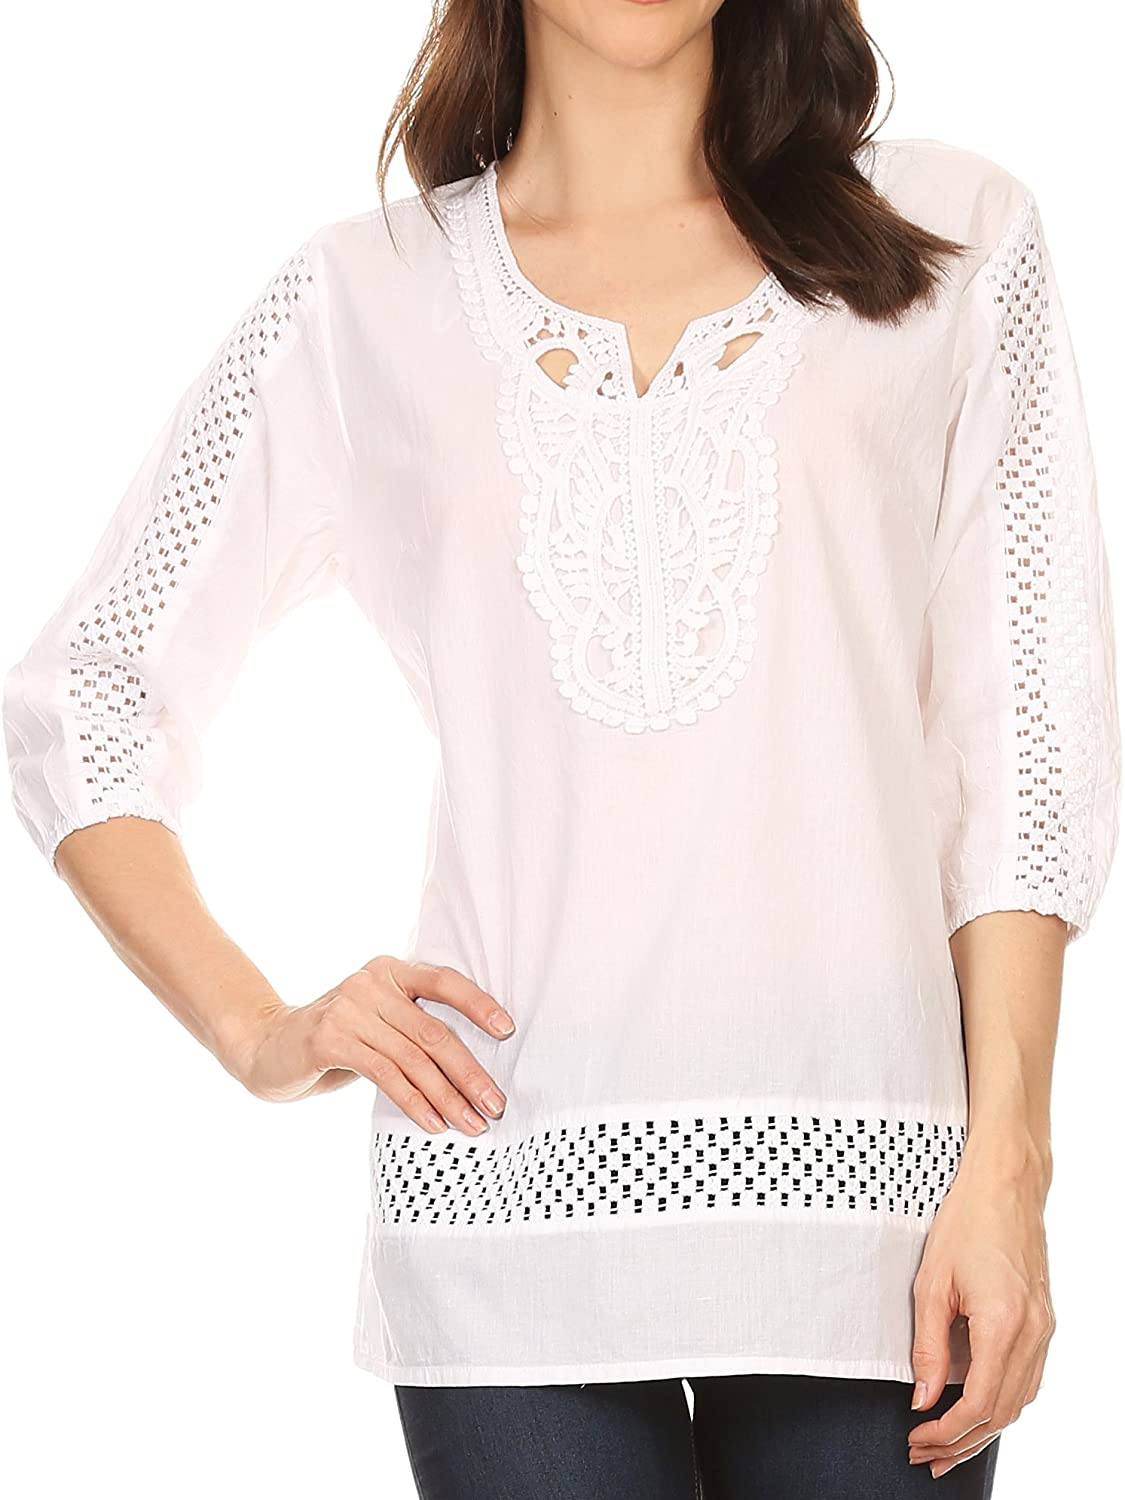 Sakkas Marion 3/4 Sleeve Blouse Tunic with Lace Applique and Crochet